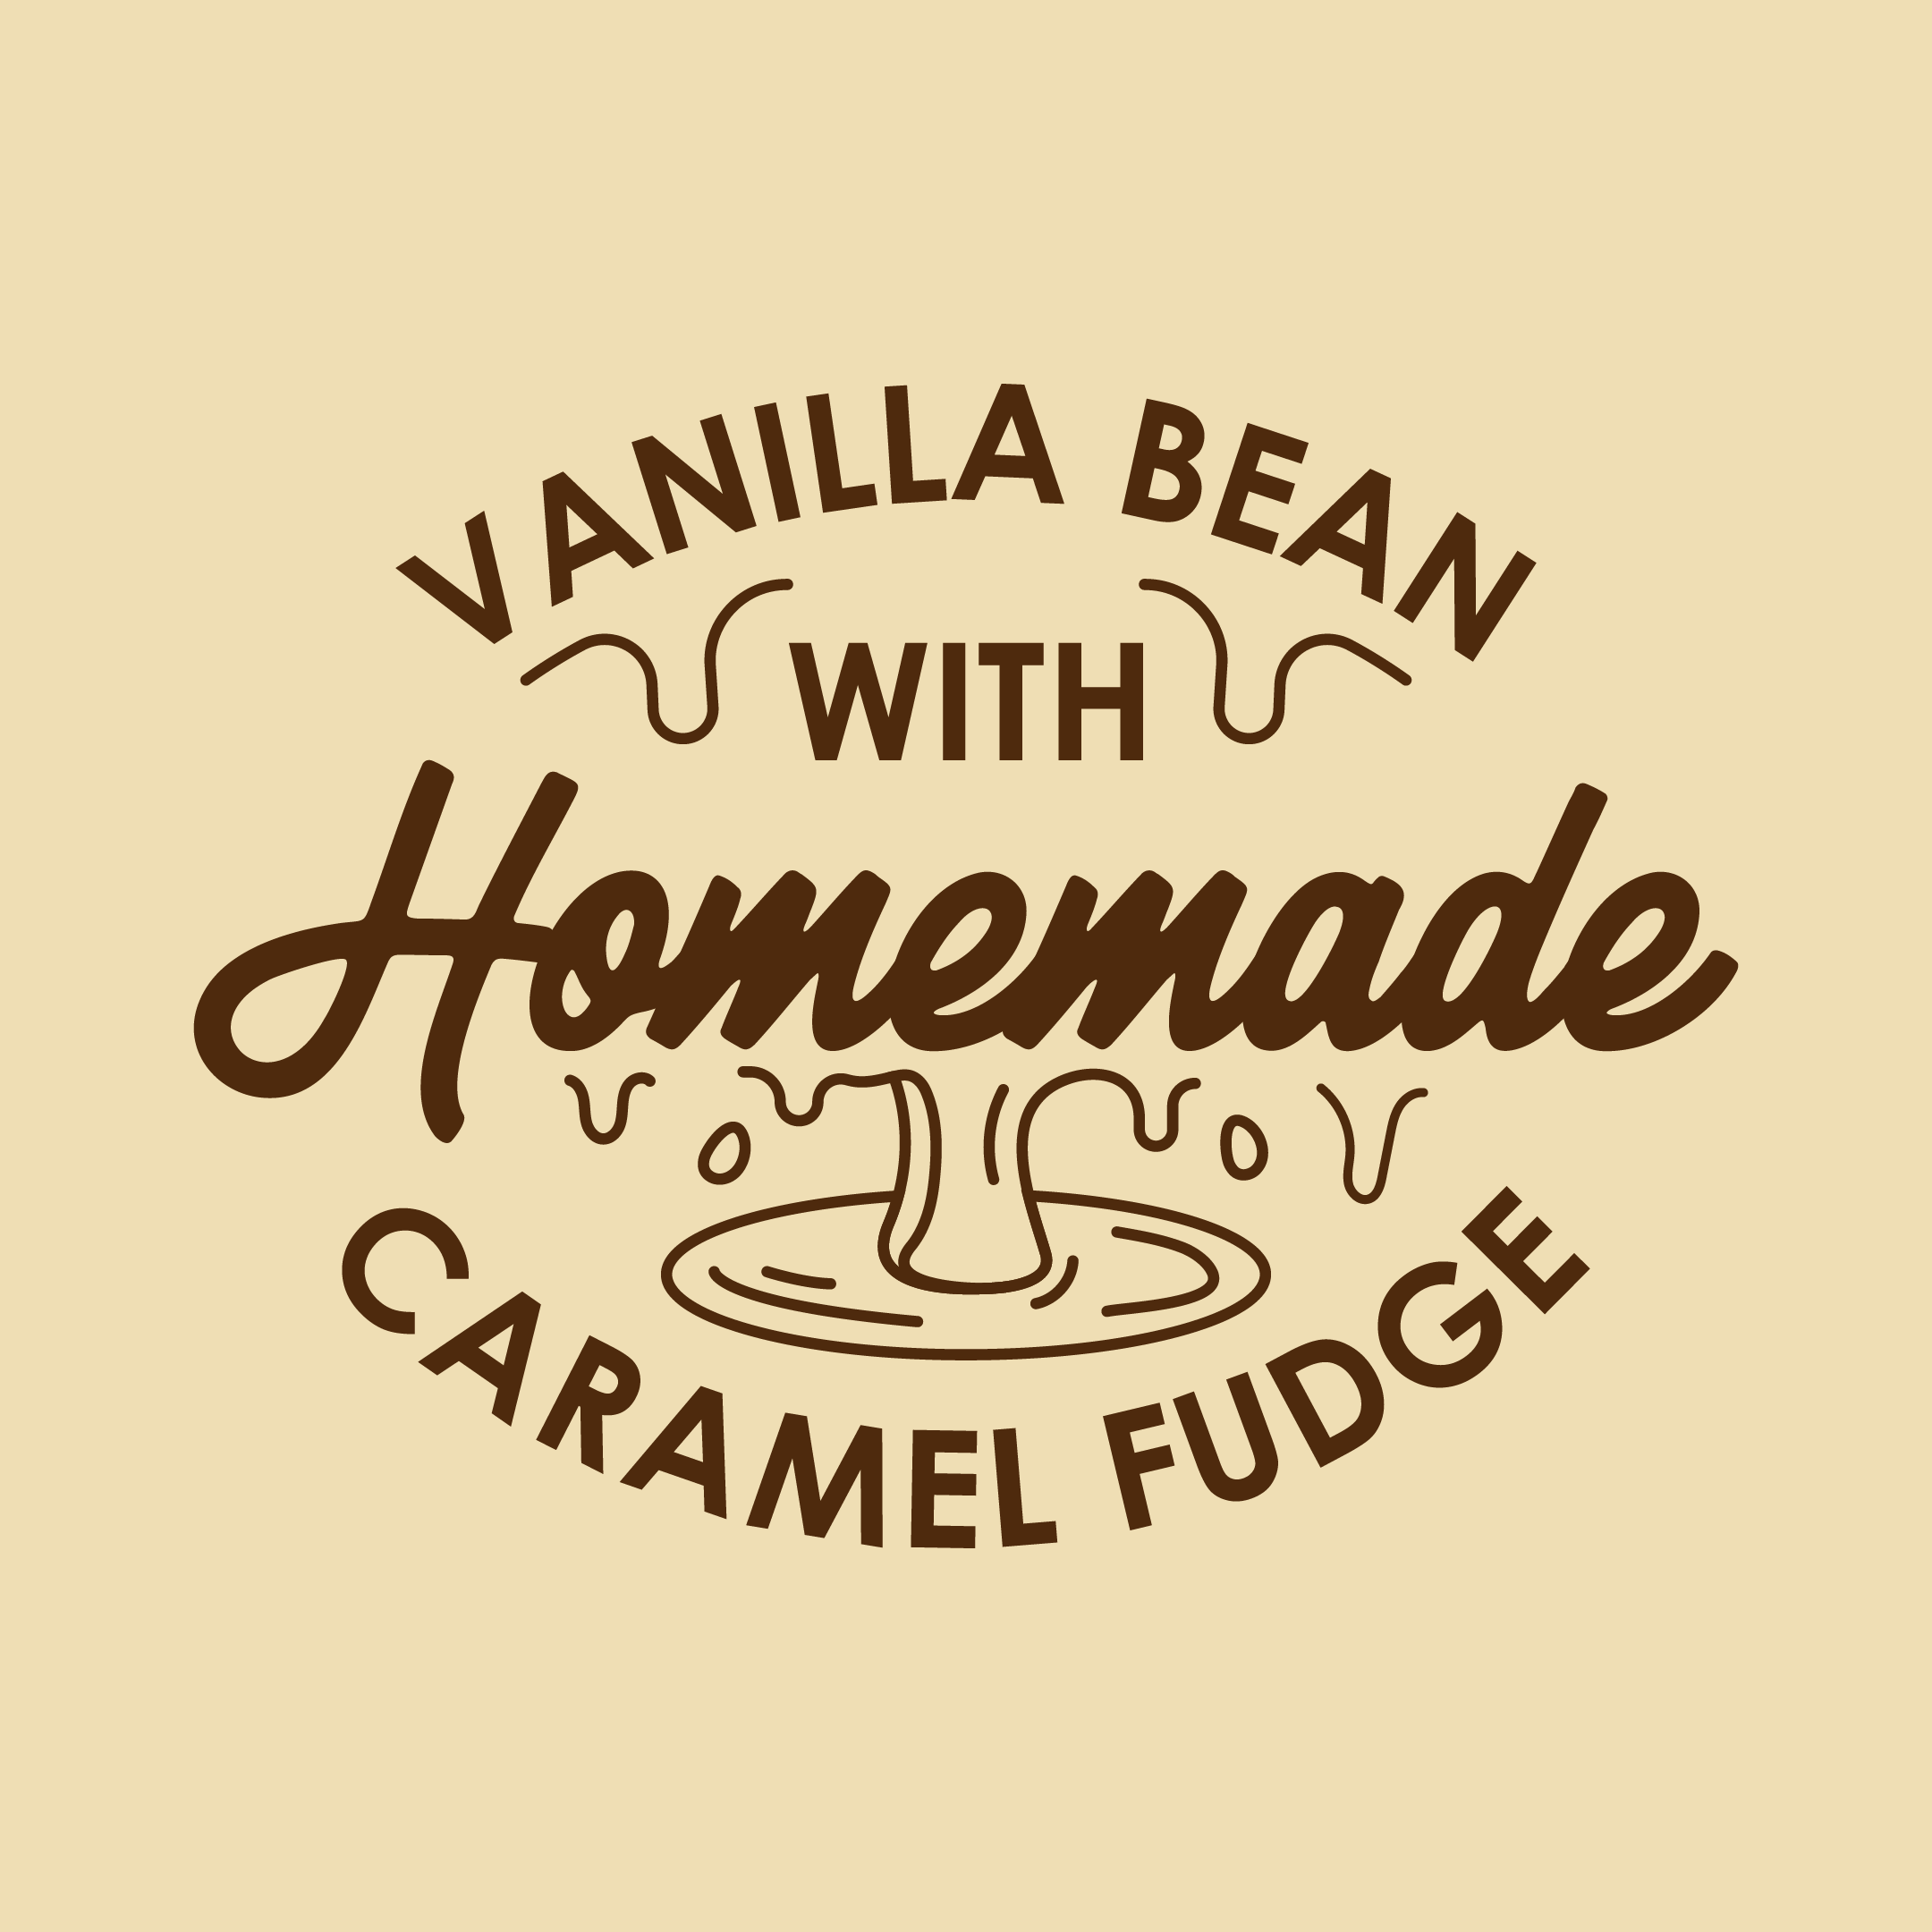 Vanilla Bean with Homemade Caramel Fudge 500ml TUBS